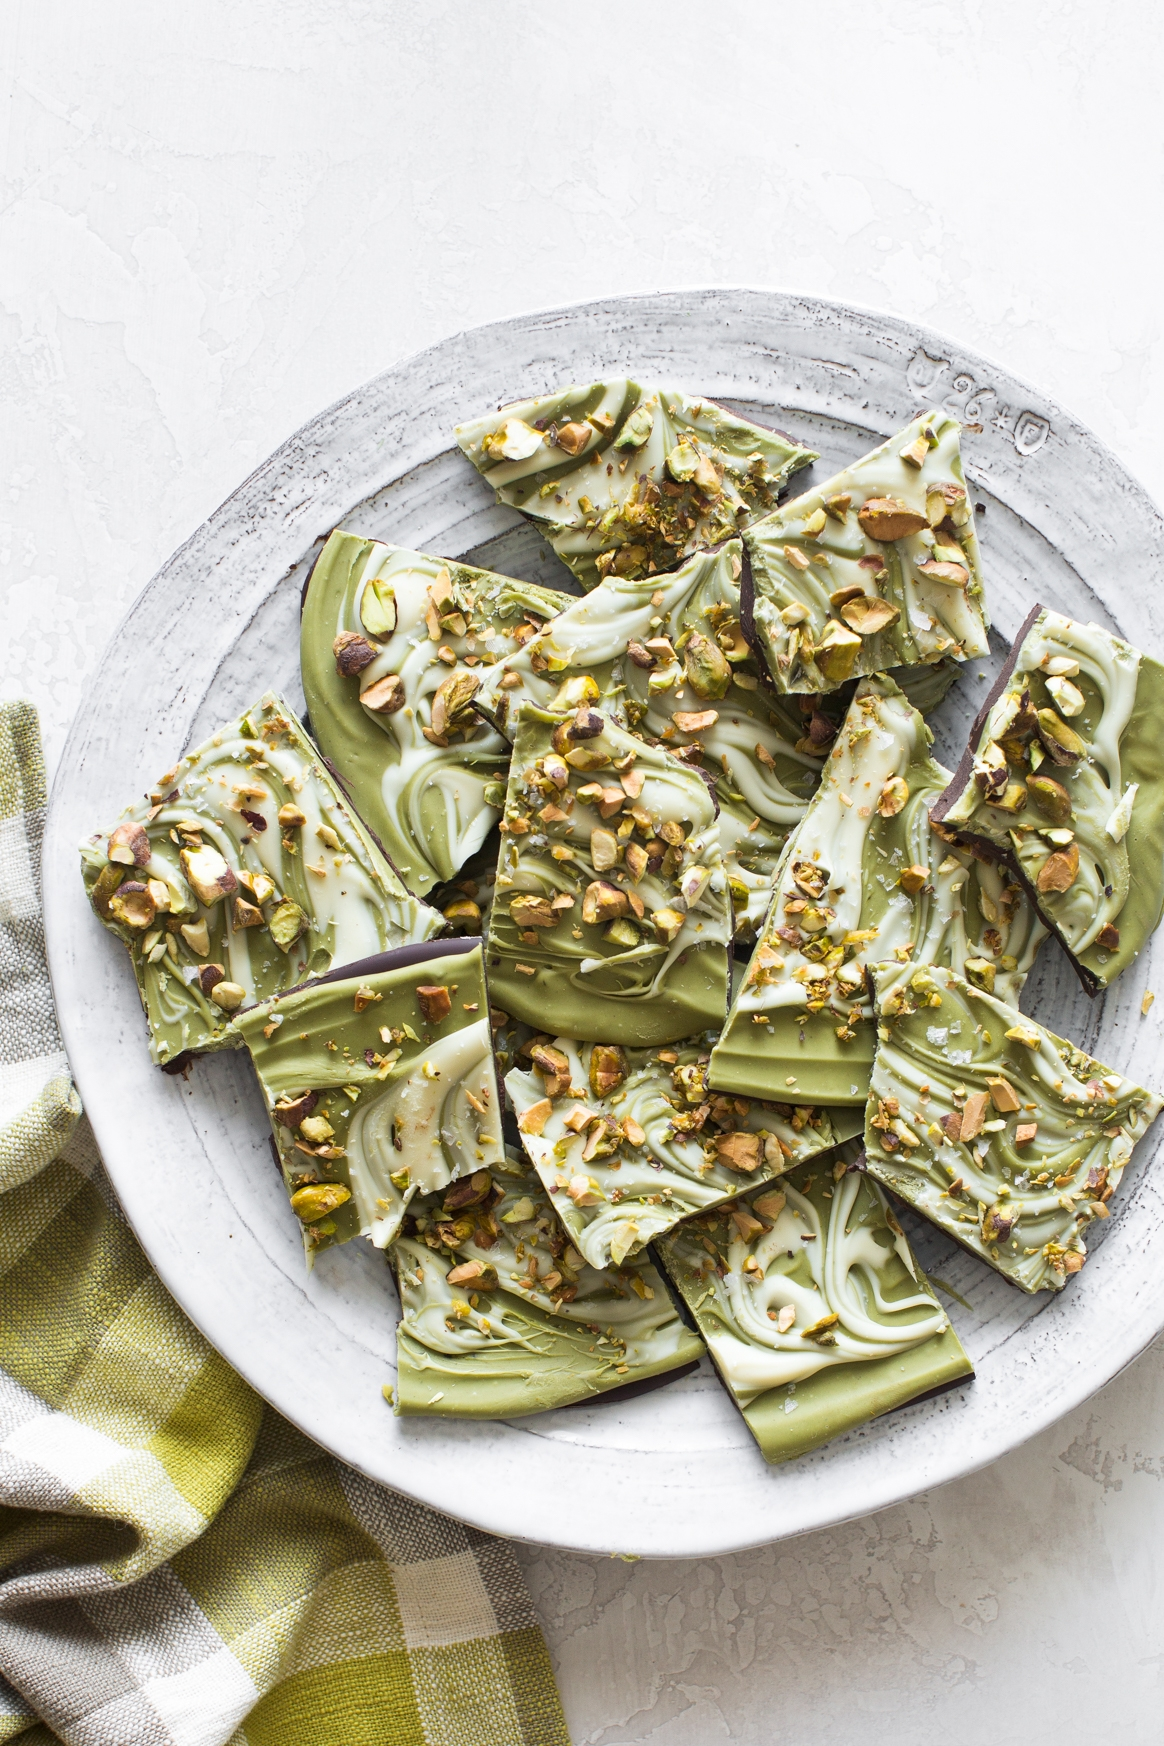 Double Chocolate Matcha Bark with Toasted Pistachios